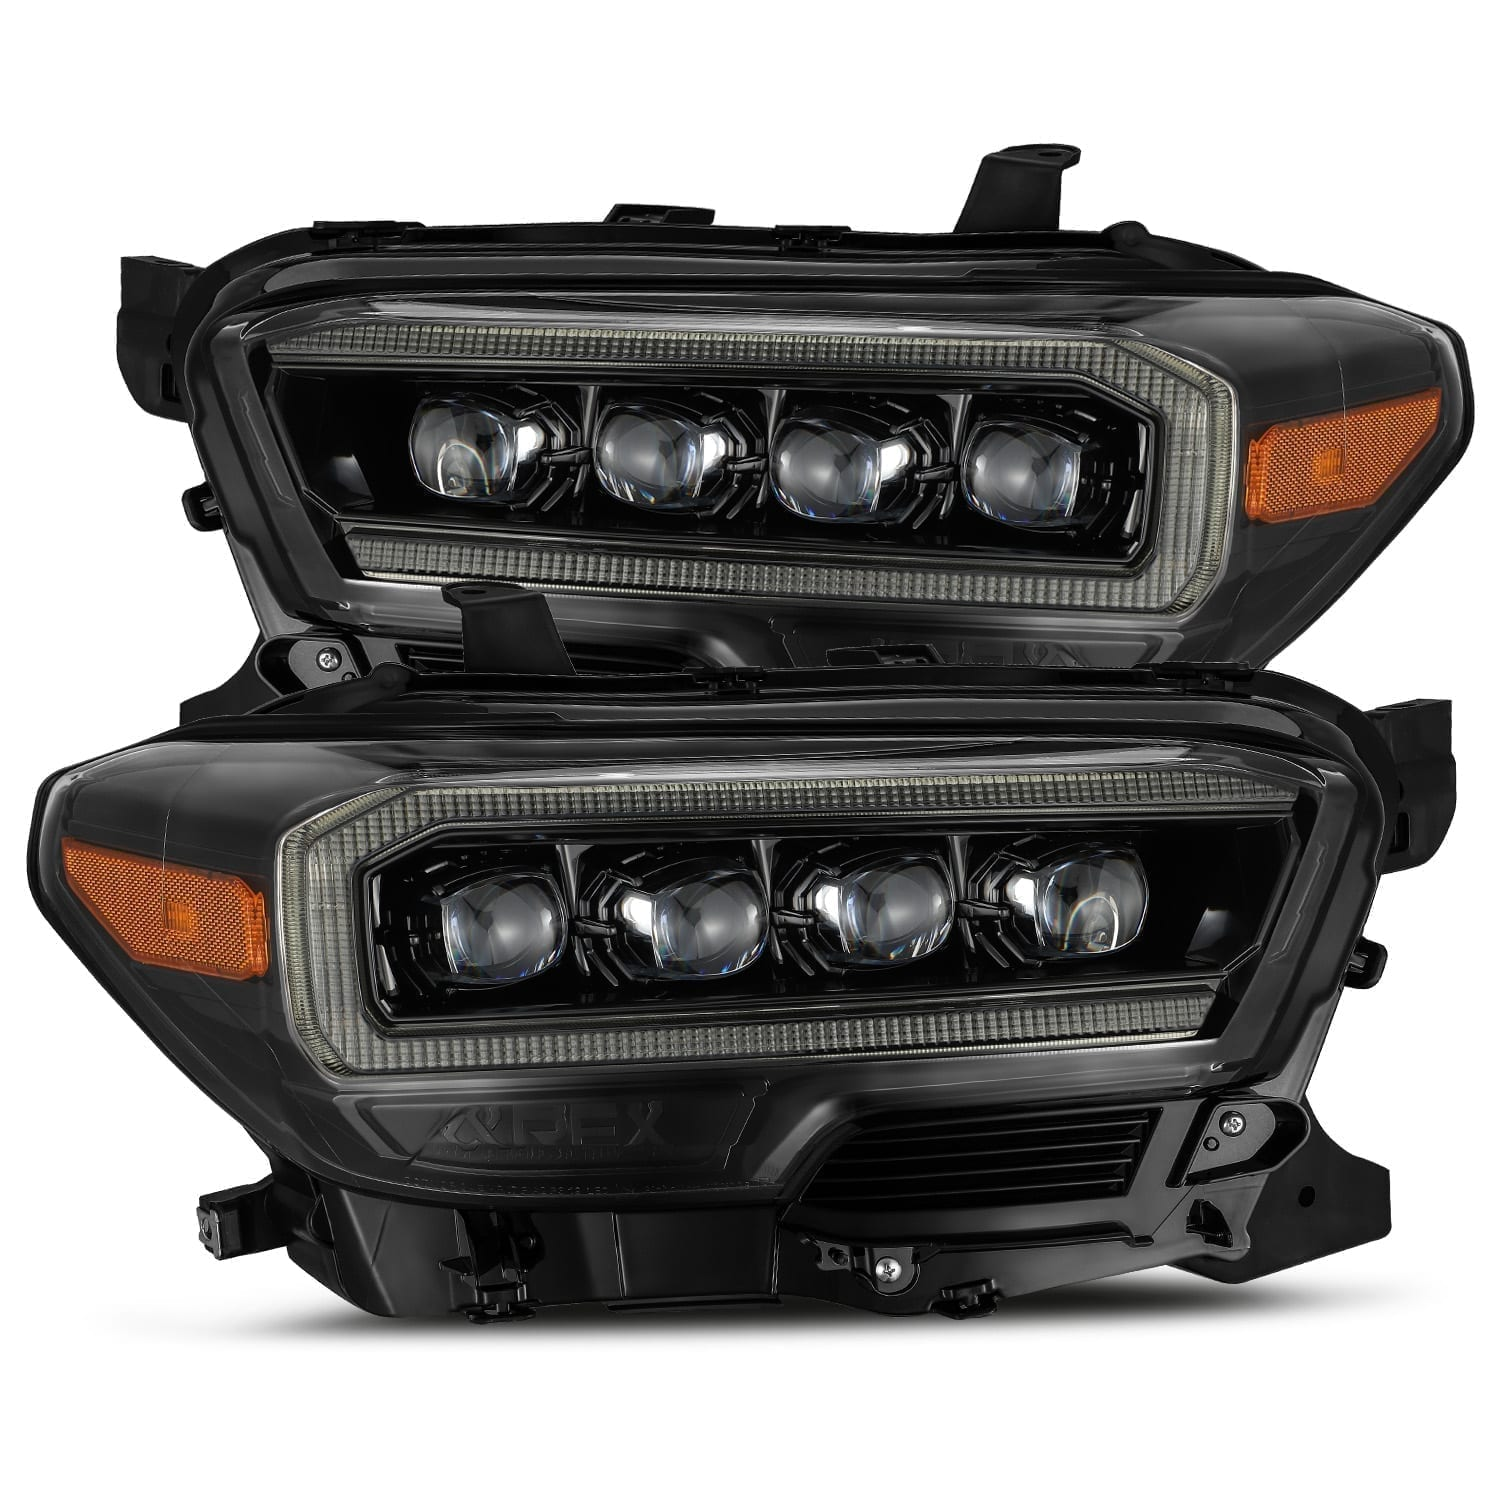 AlphaRex 16-20 Toyota Tacoma NOVA-Series LED Projector Headlights Mid-Night Black